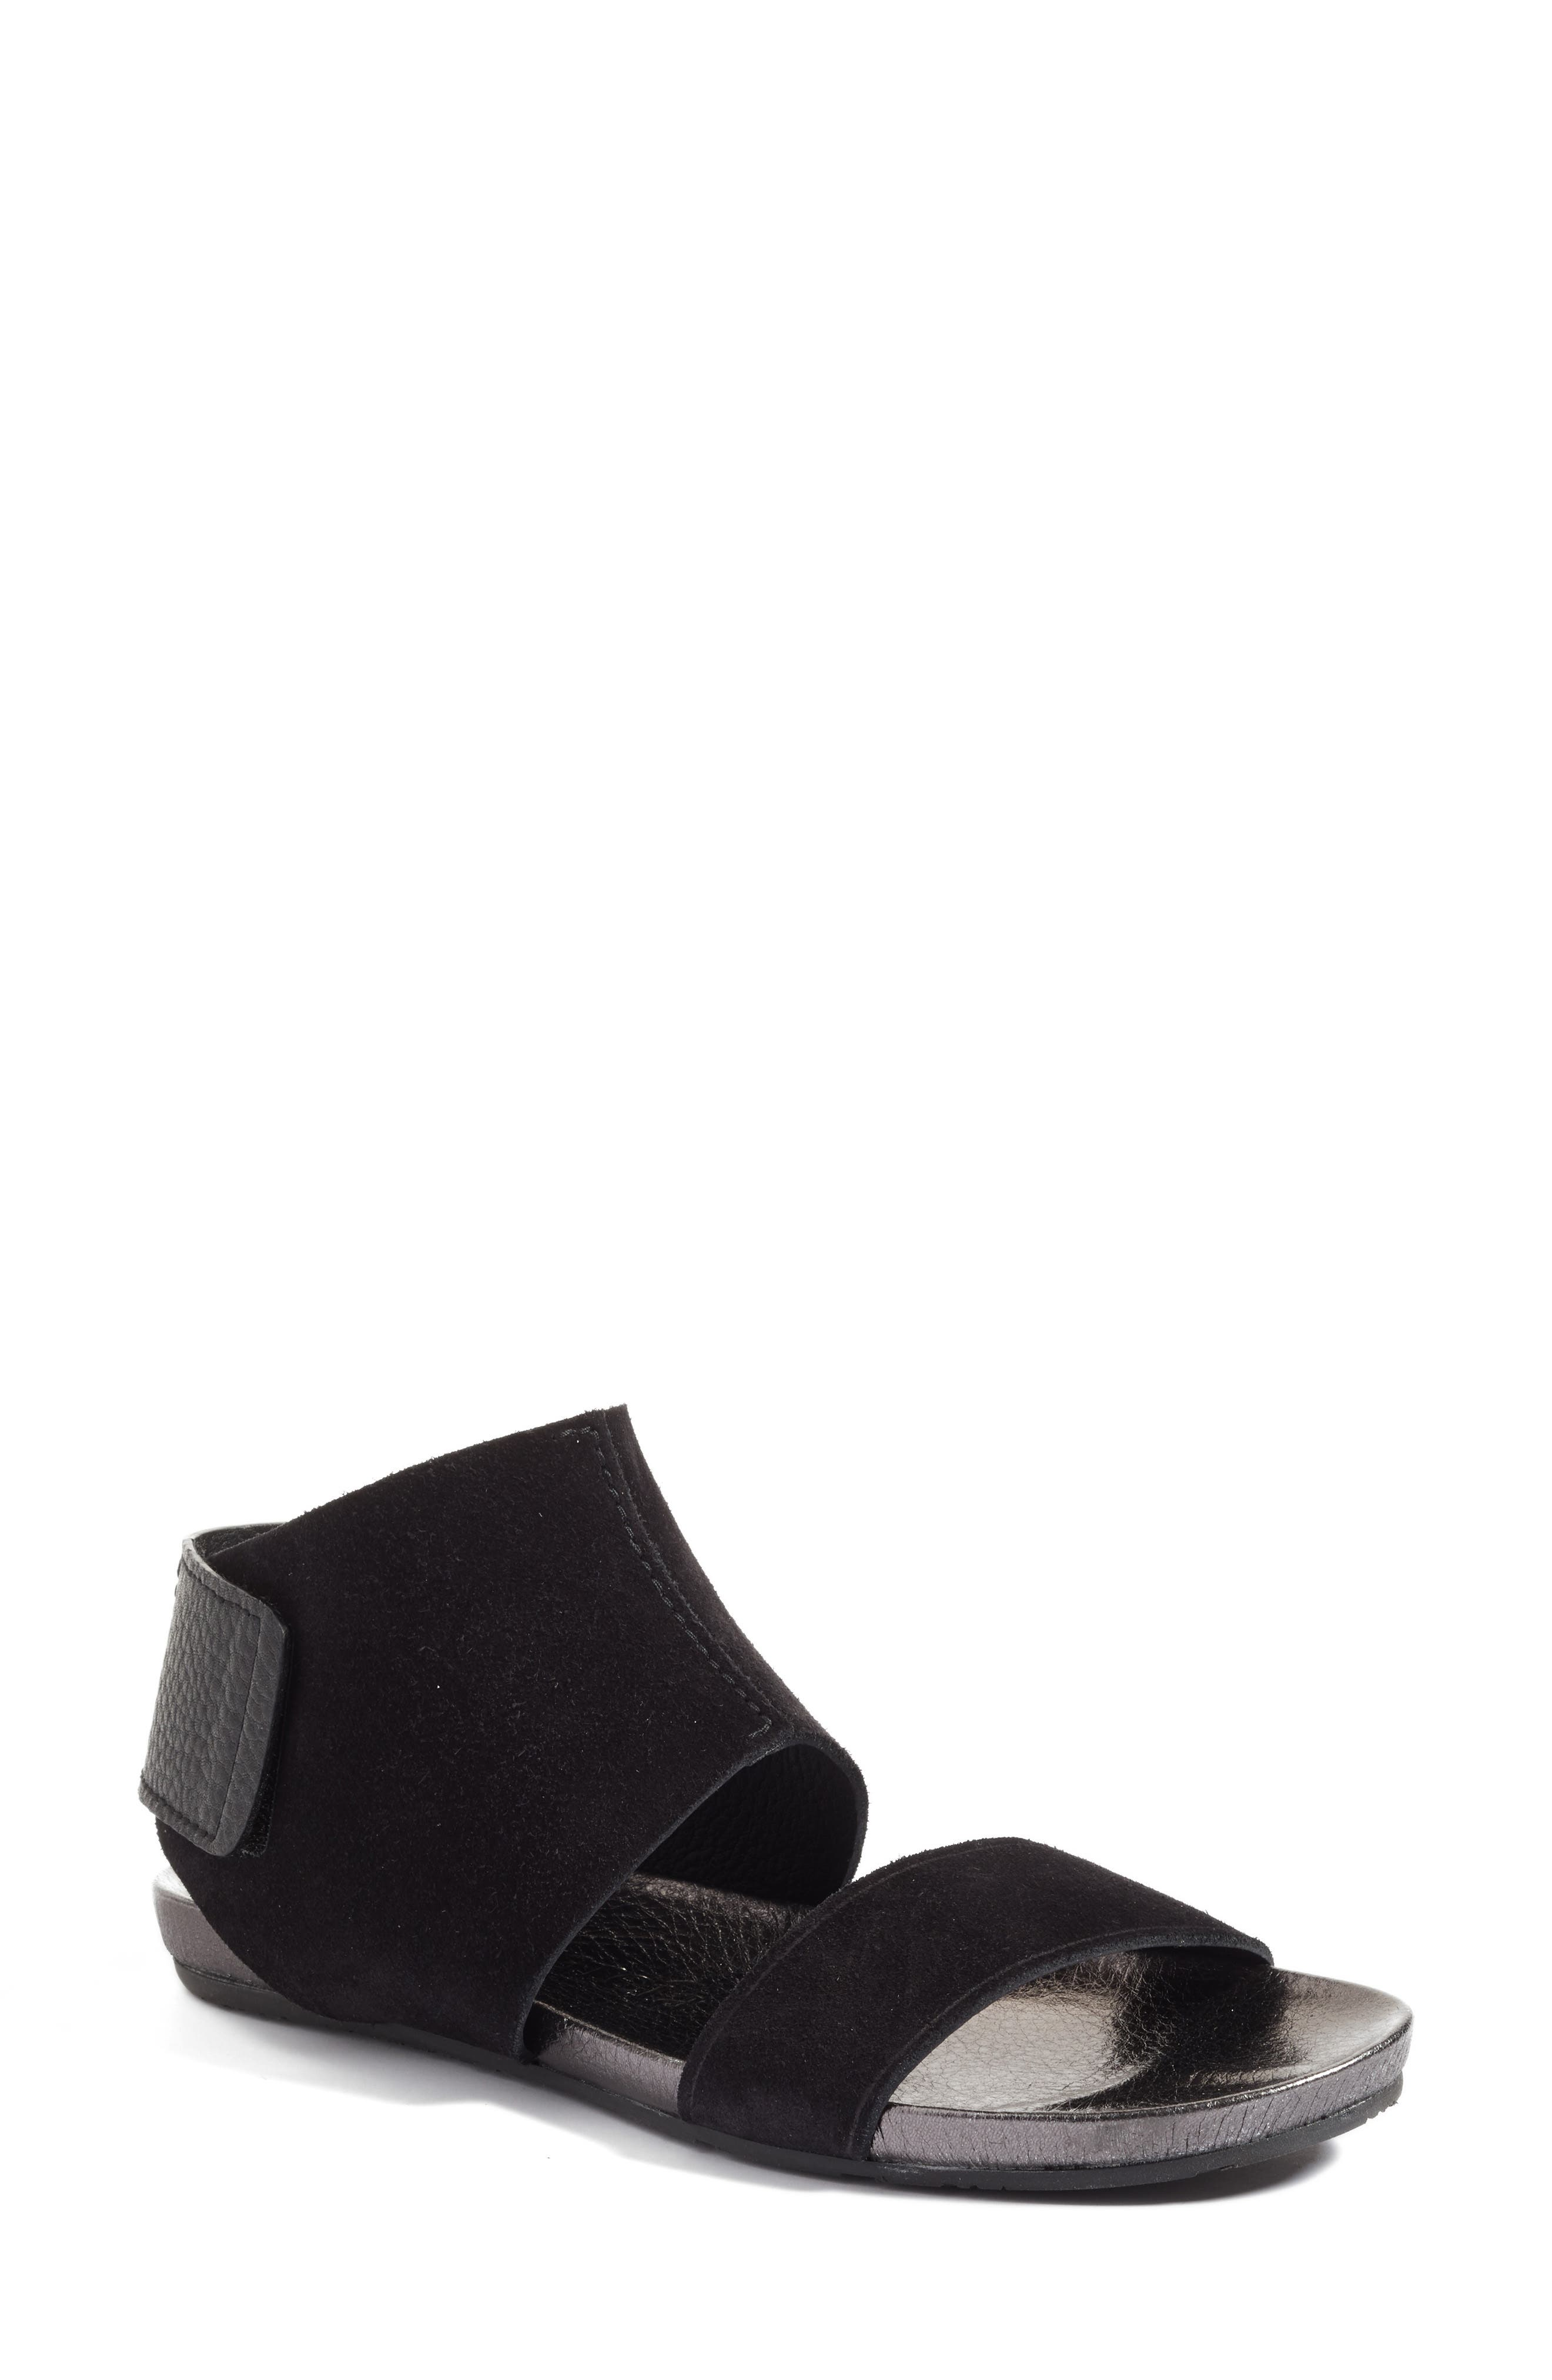 Ankle Cuff Sandal,                         Main,                         color, Black Leather